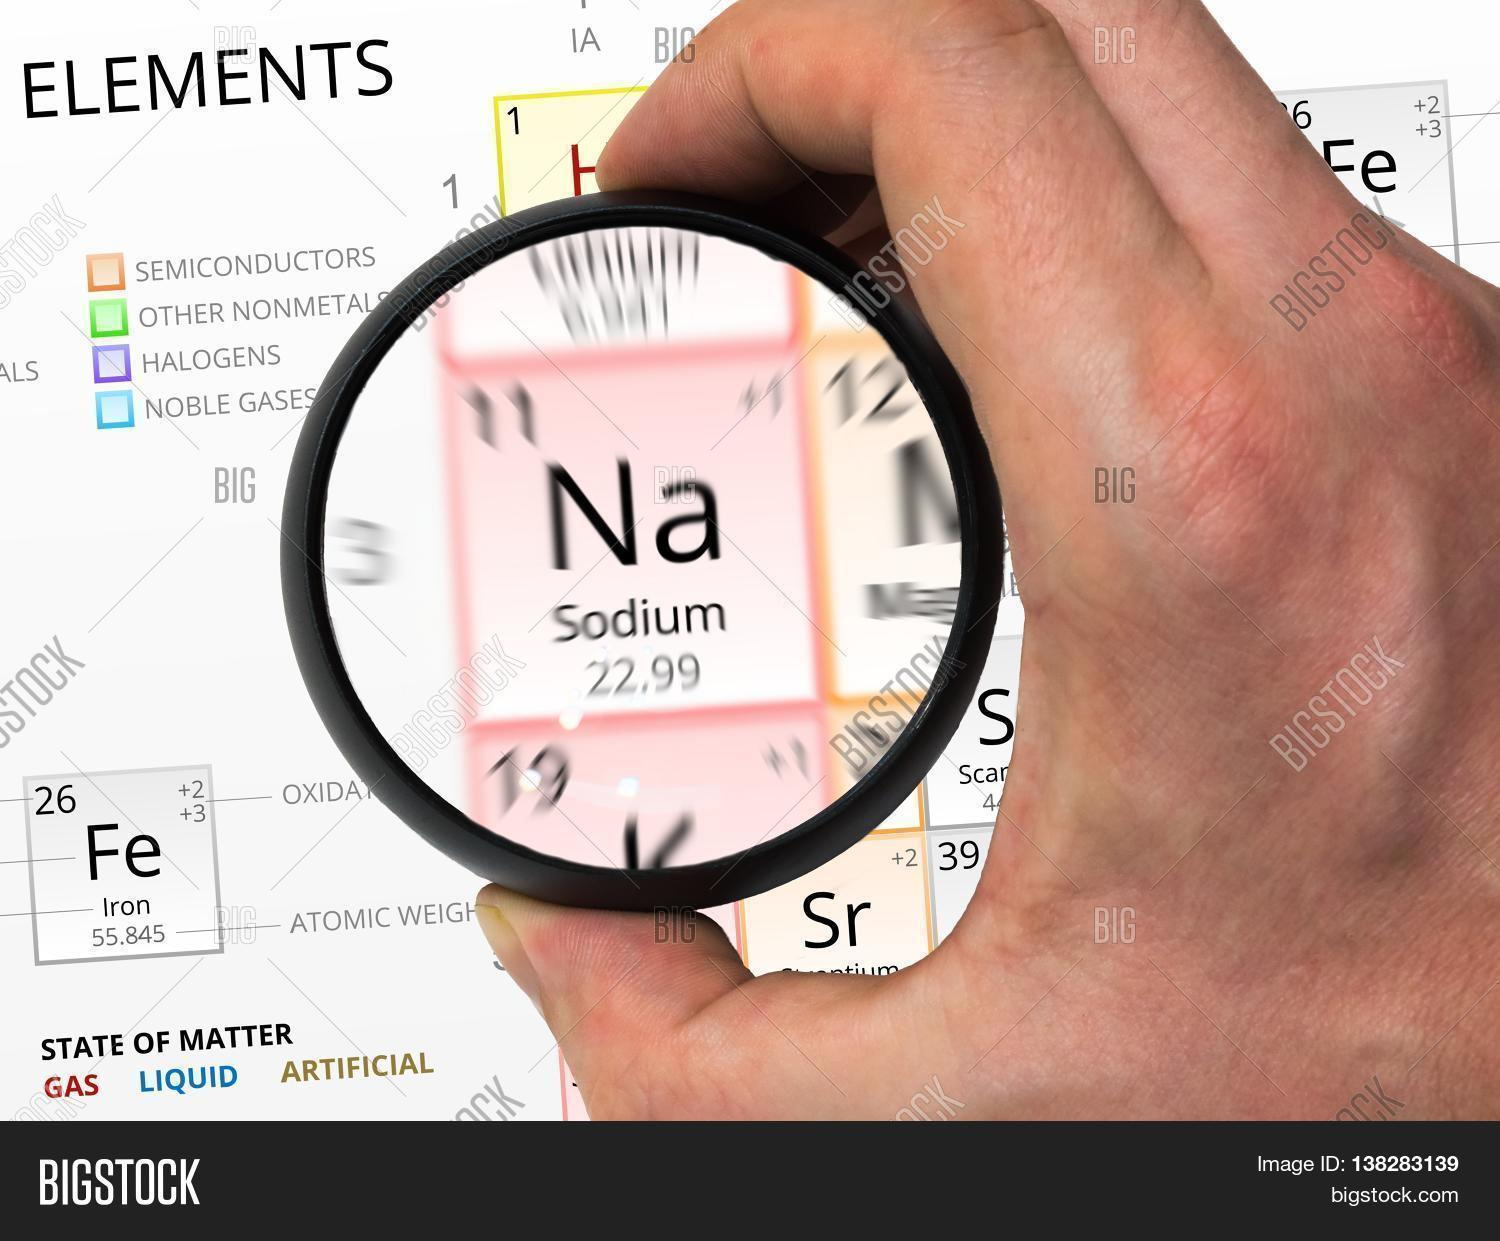 Sodium Symbol Na Image Photo Free Trial Bigstock